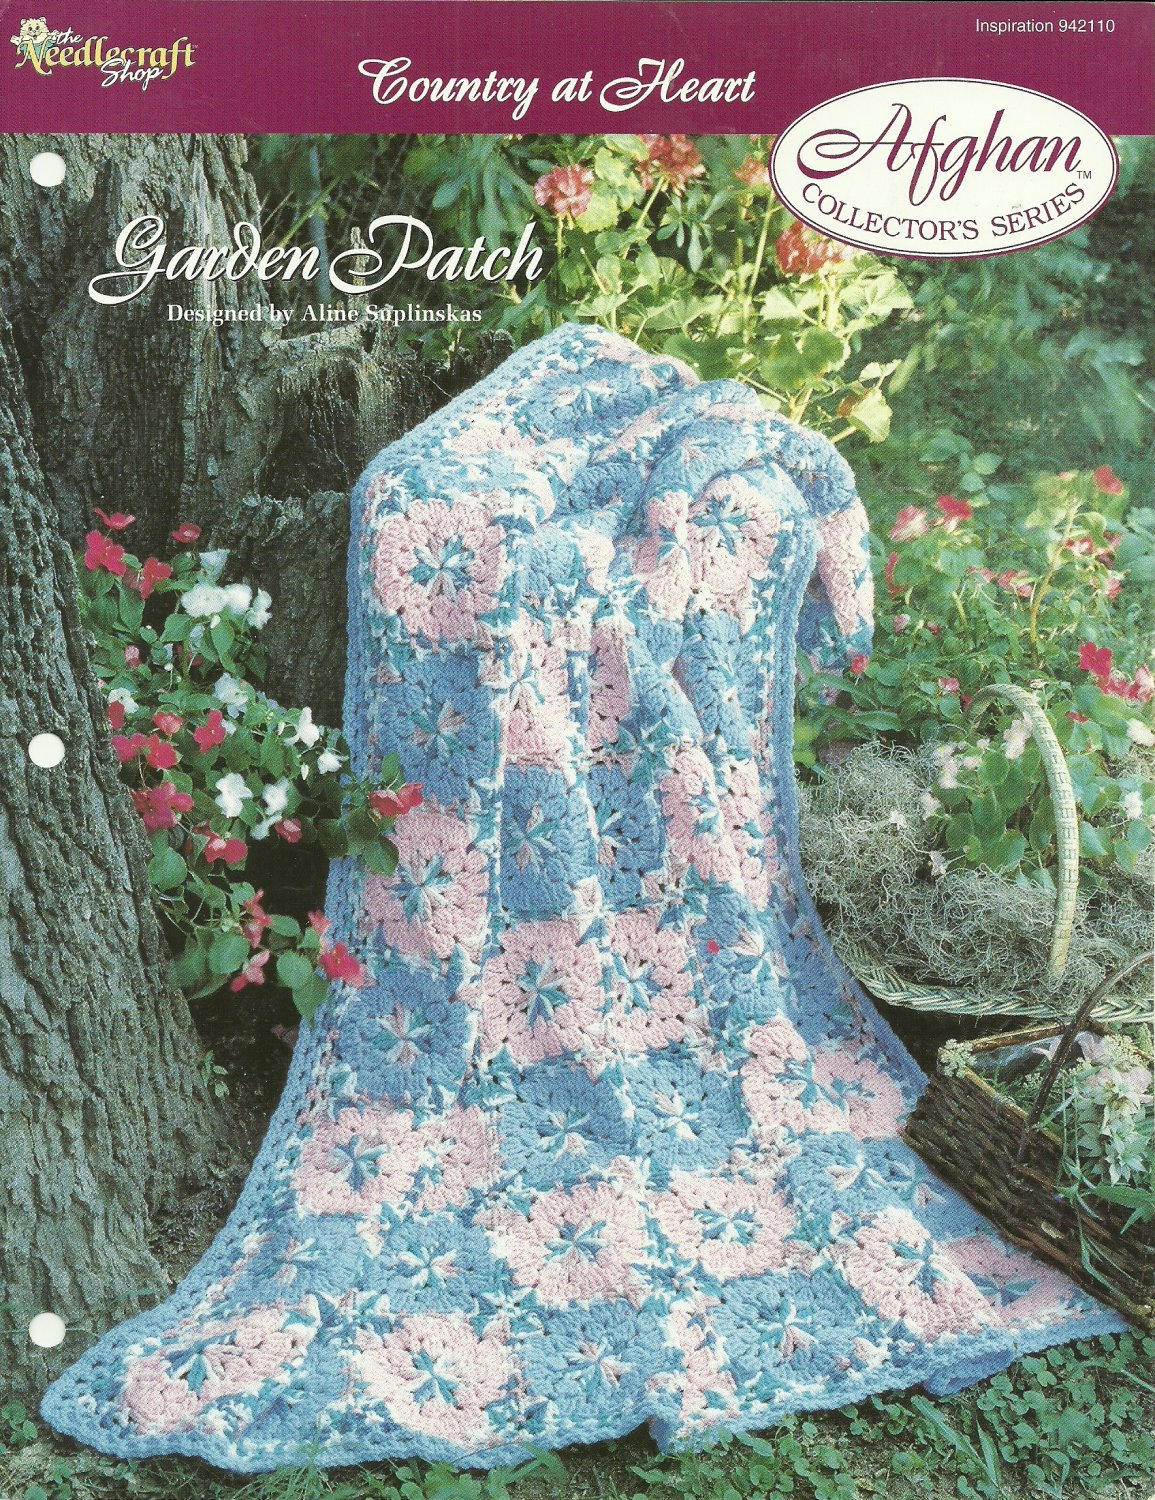 *Crochet Afghan Collector's Series - Garden Patch